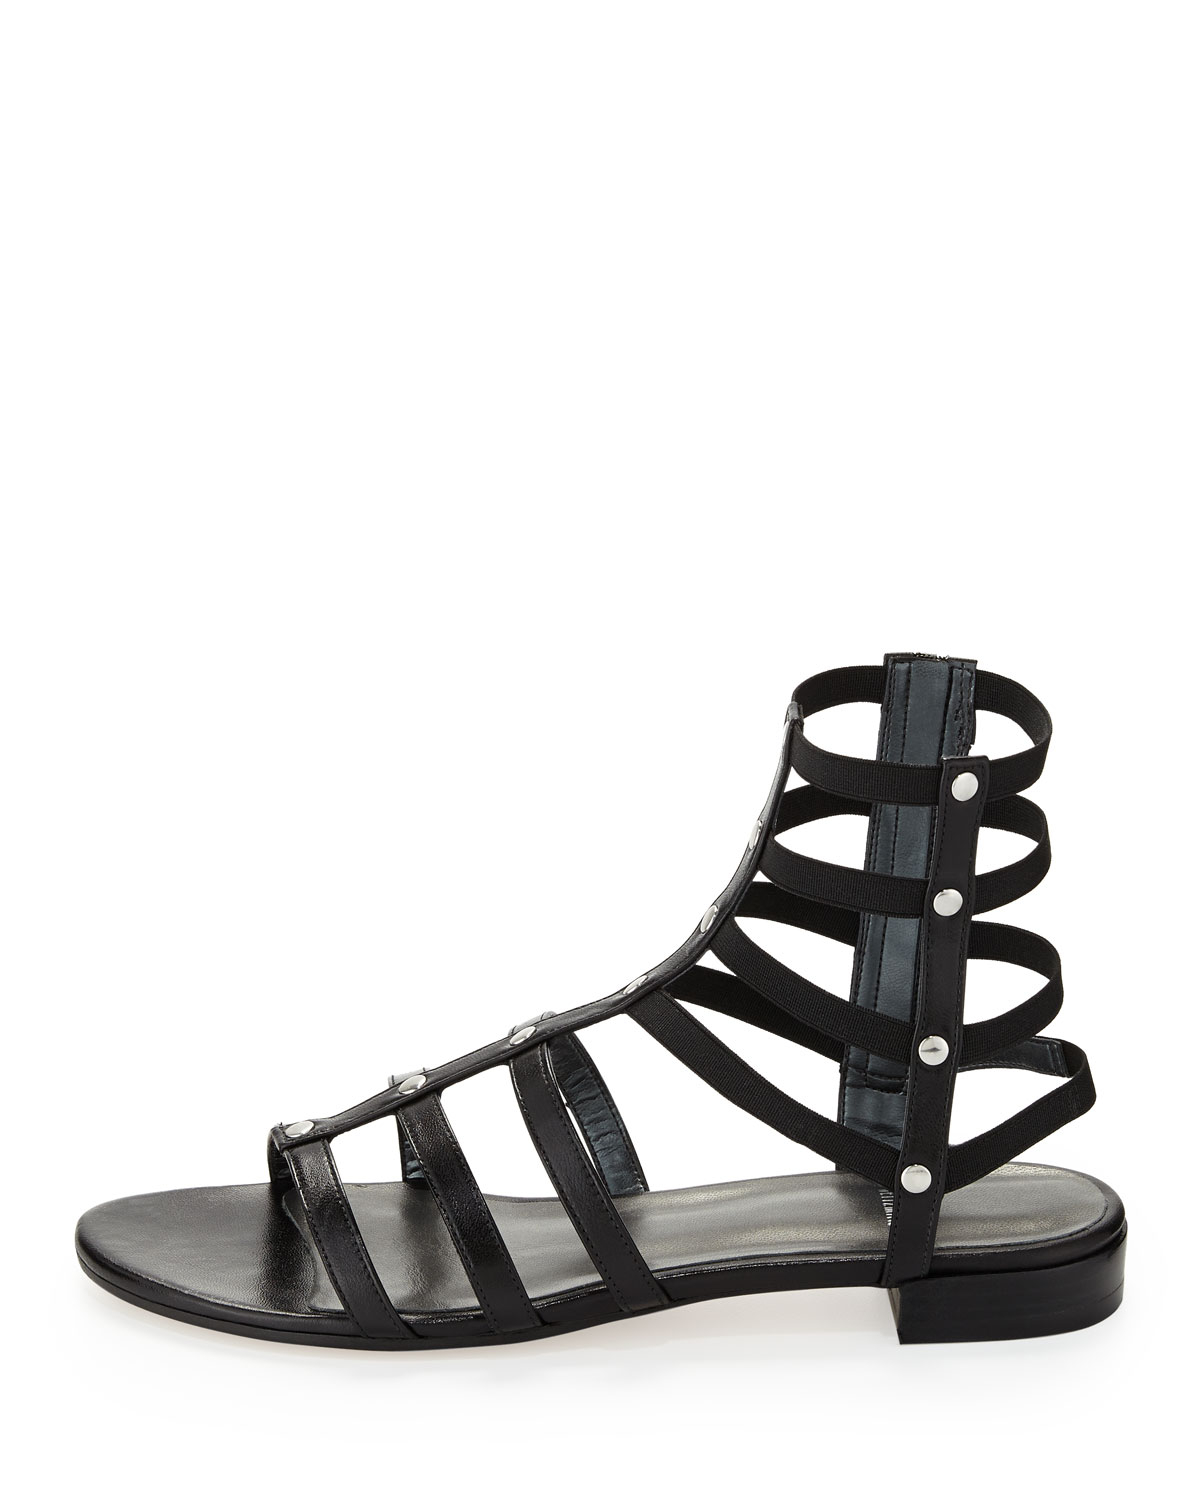 21563ac3f22 Lyst - Stuart Weitzman Caesar Stretch Gladiator Sandal Black Made To ...